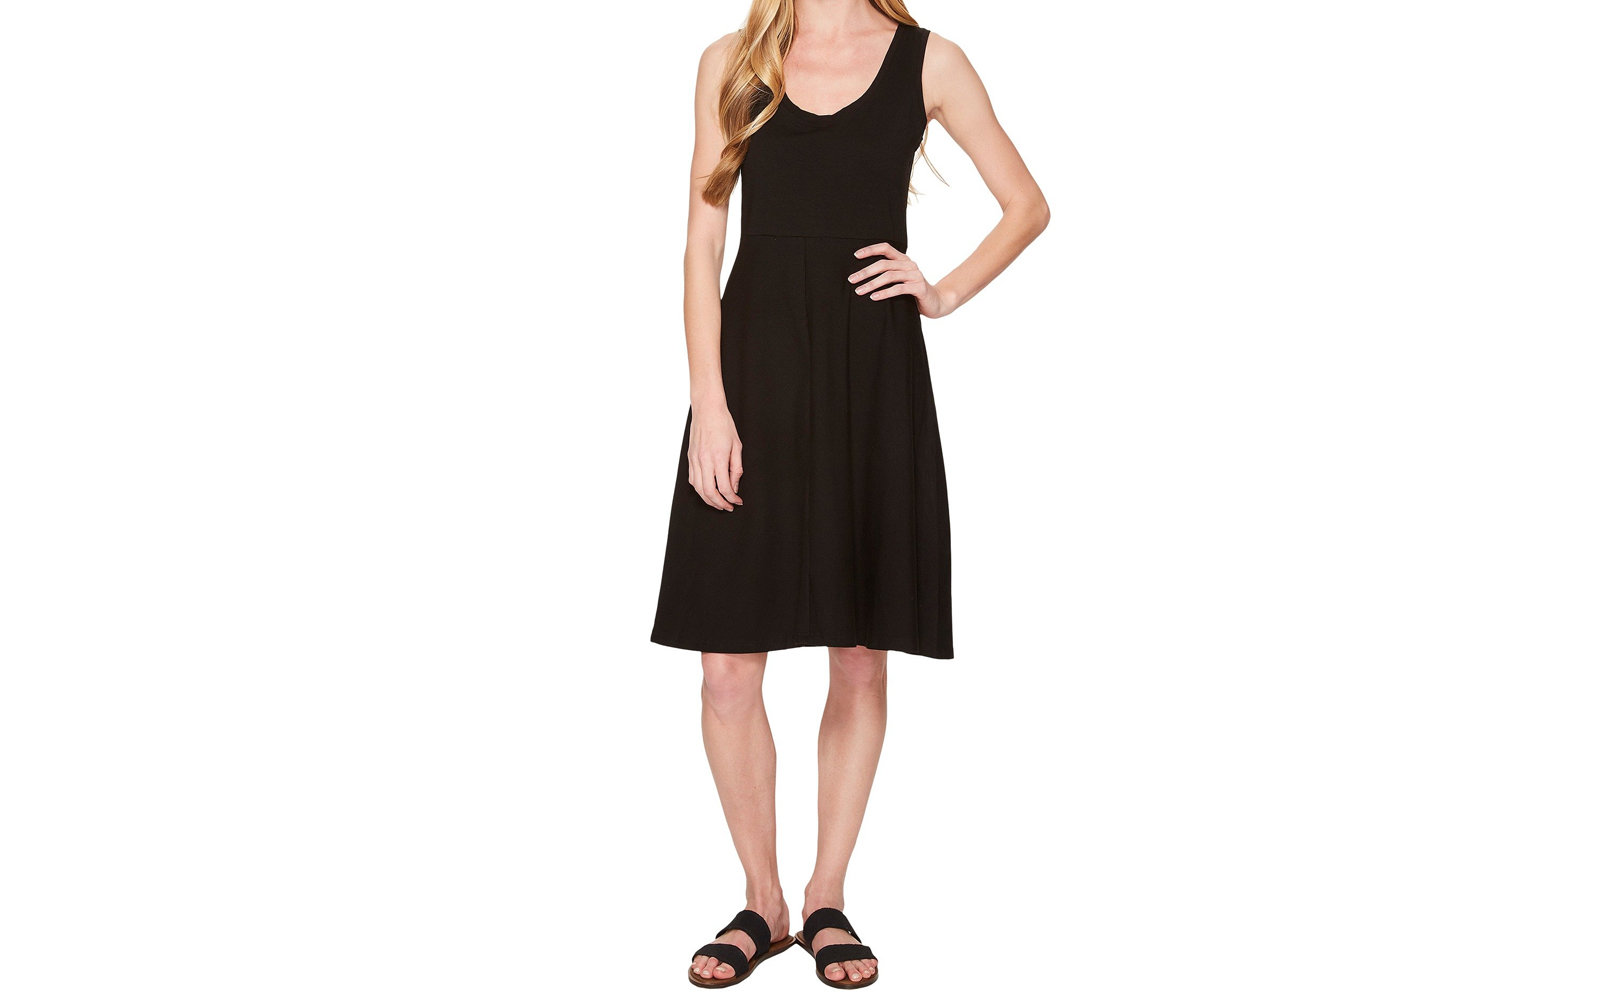 cdaacaf2bd 9 Wrinkle-resistant Dresses for Travel